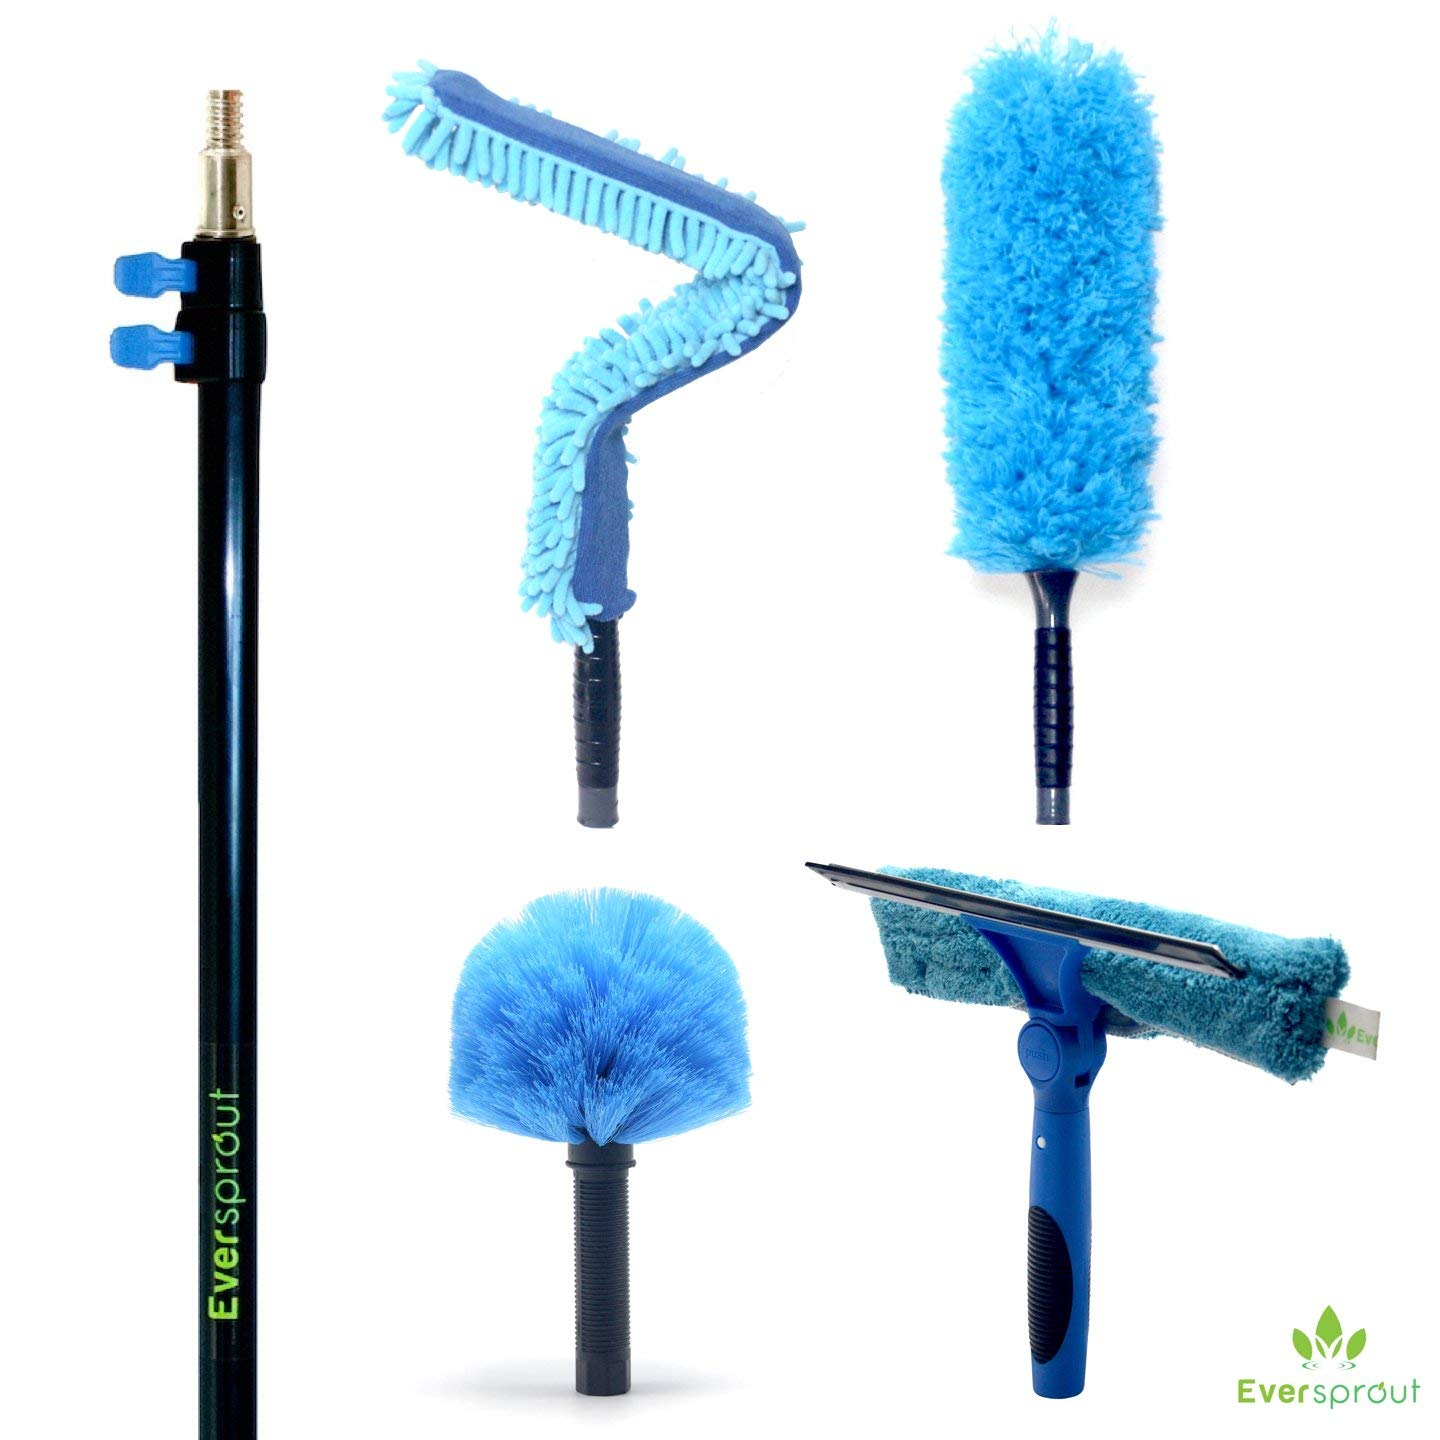 EVERSPROUT 4-Pack Duster Squeegee Kit with Extension-Pole (20+ Foot Reach) | Swivel Squeegee, Hand-Packaged Cobweb Duster, Microfiber Feather Duster, Flexible Ceiling Fan Duster, 12 ft Telescopic Pole by EVERSPROUT (Image #2)